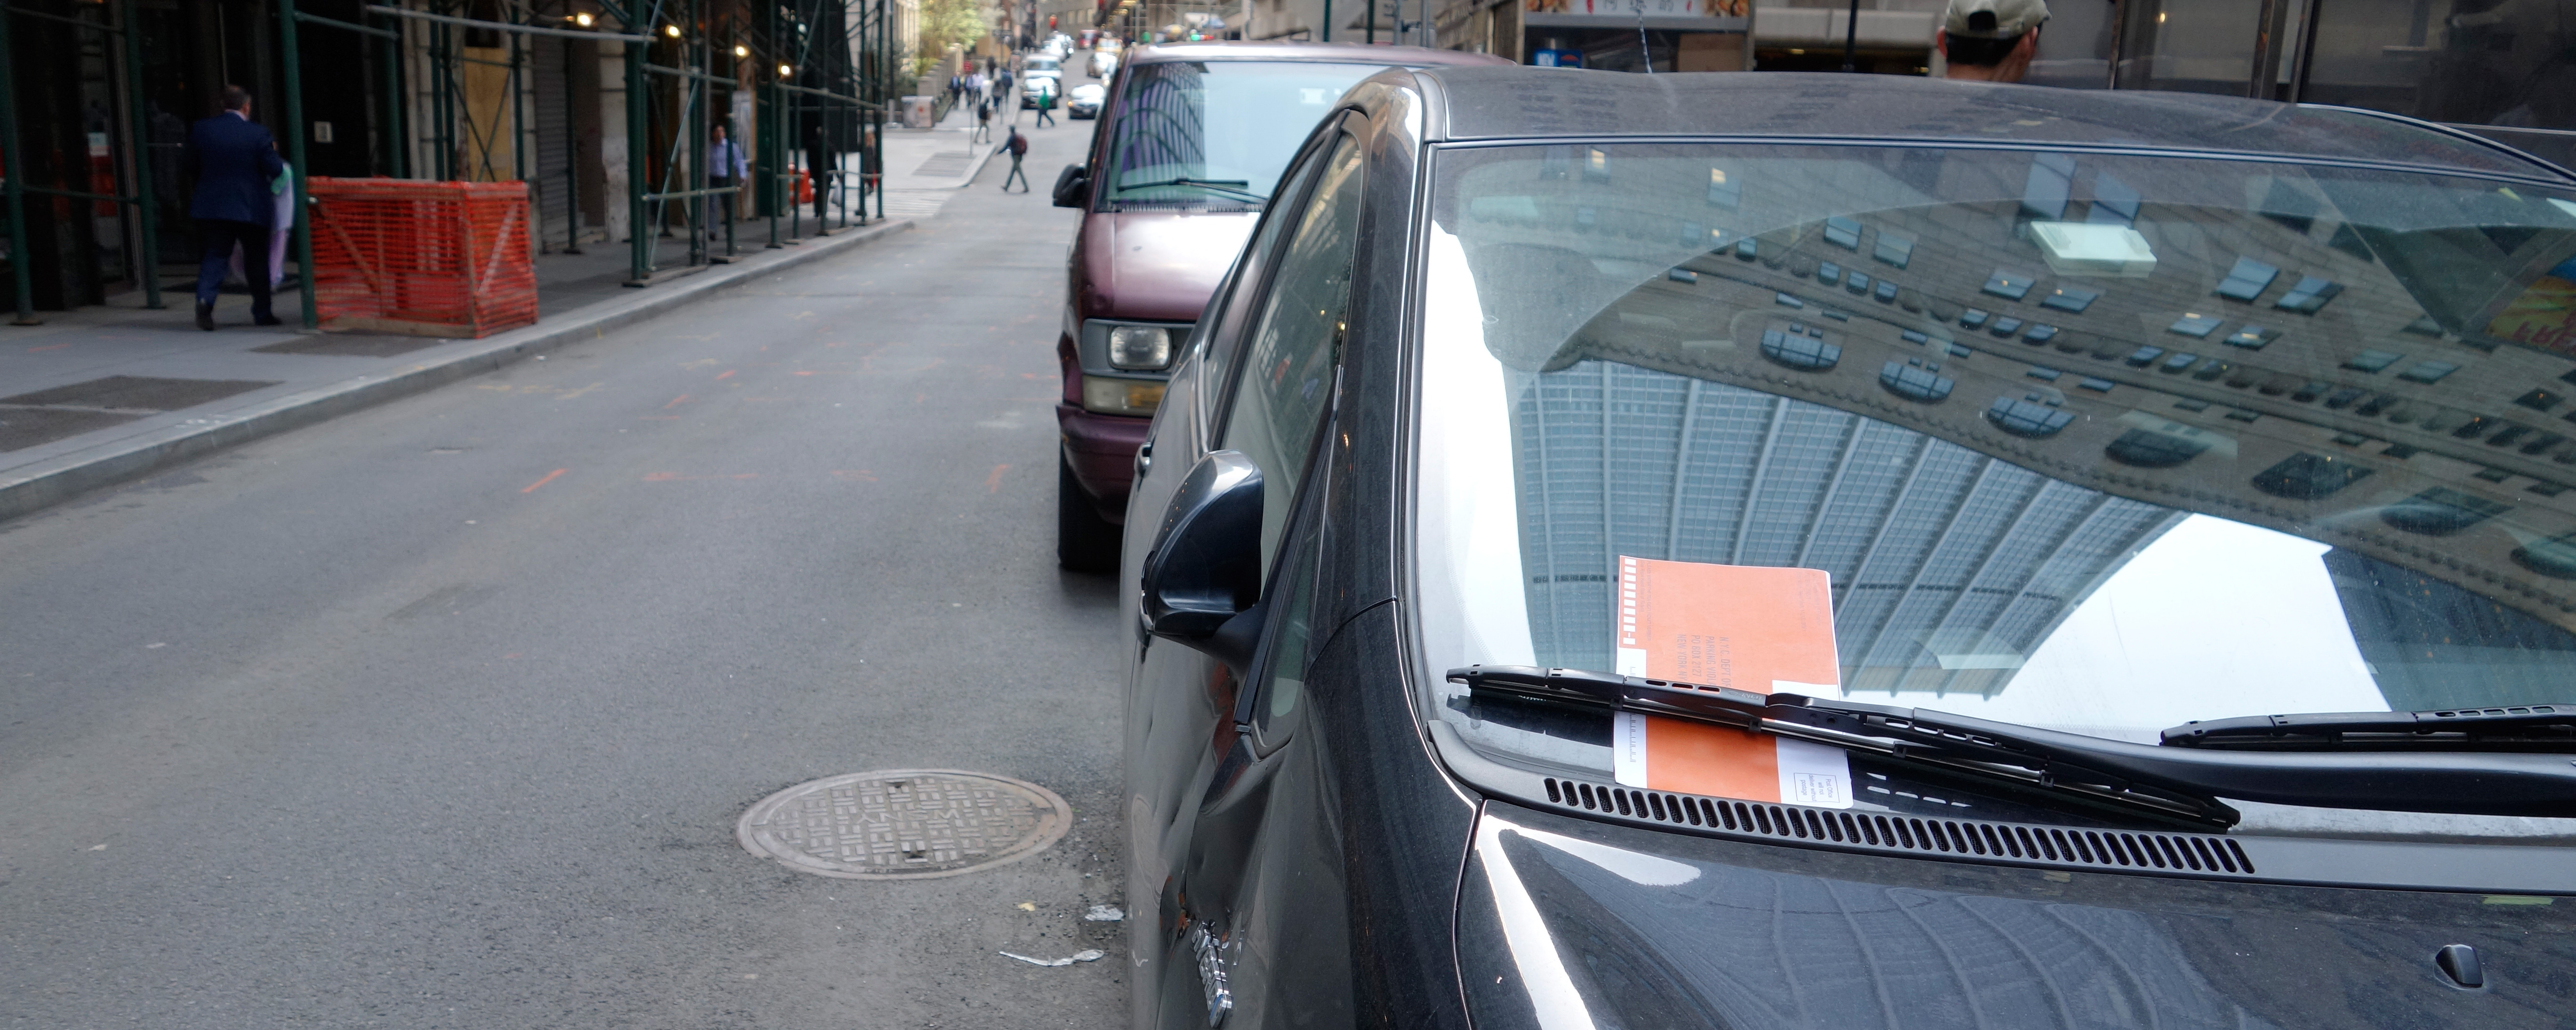 Pay a Parking Ticket in New York City | The State of New York